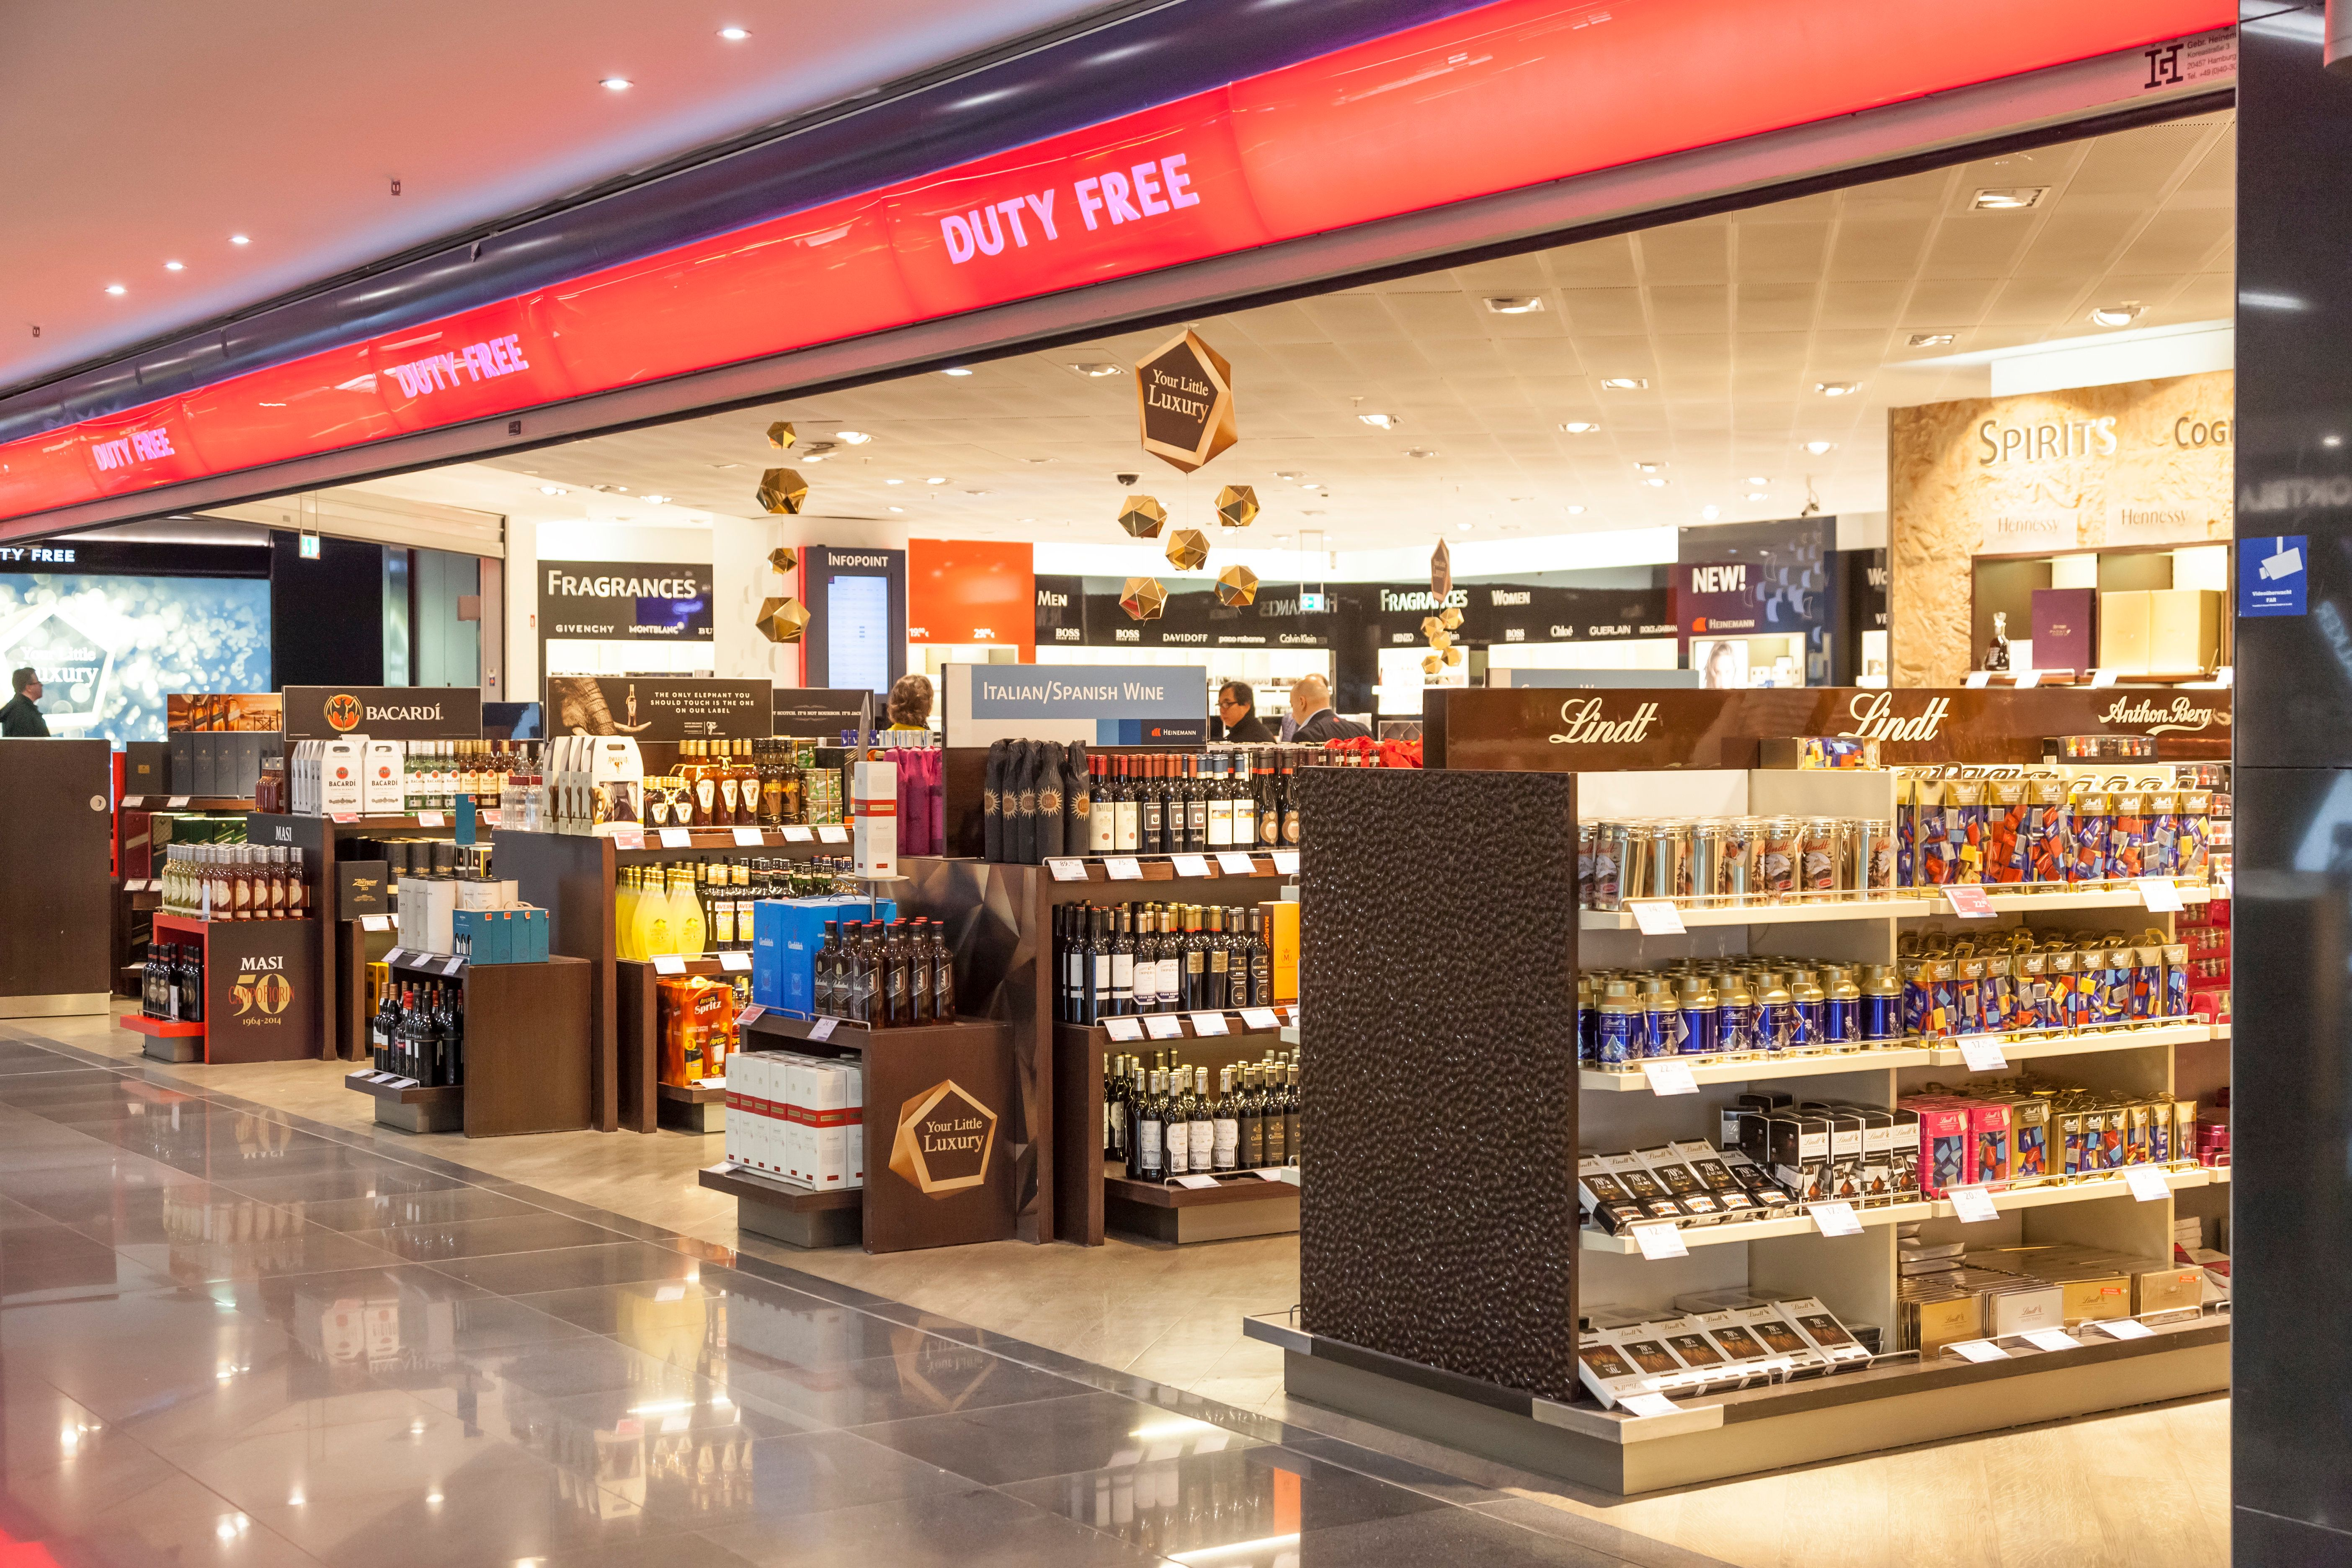 Should You Skip Duty Free? Research Reveals It Might Not Be